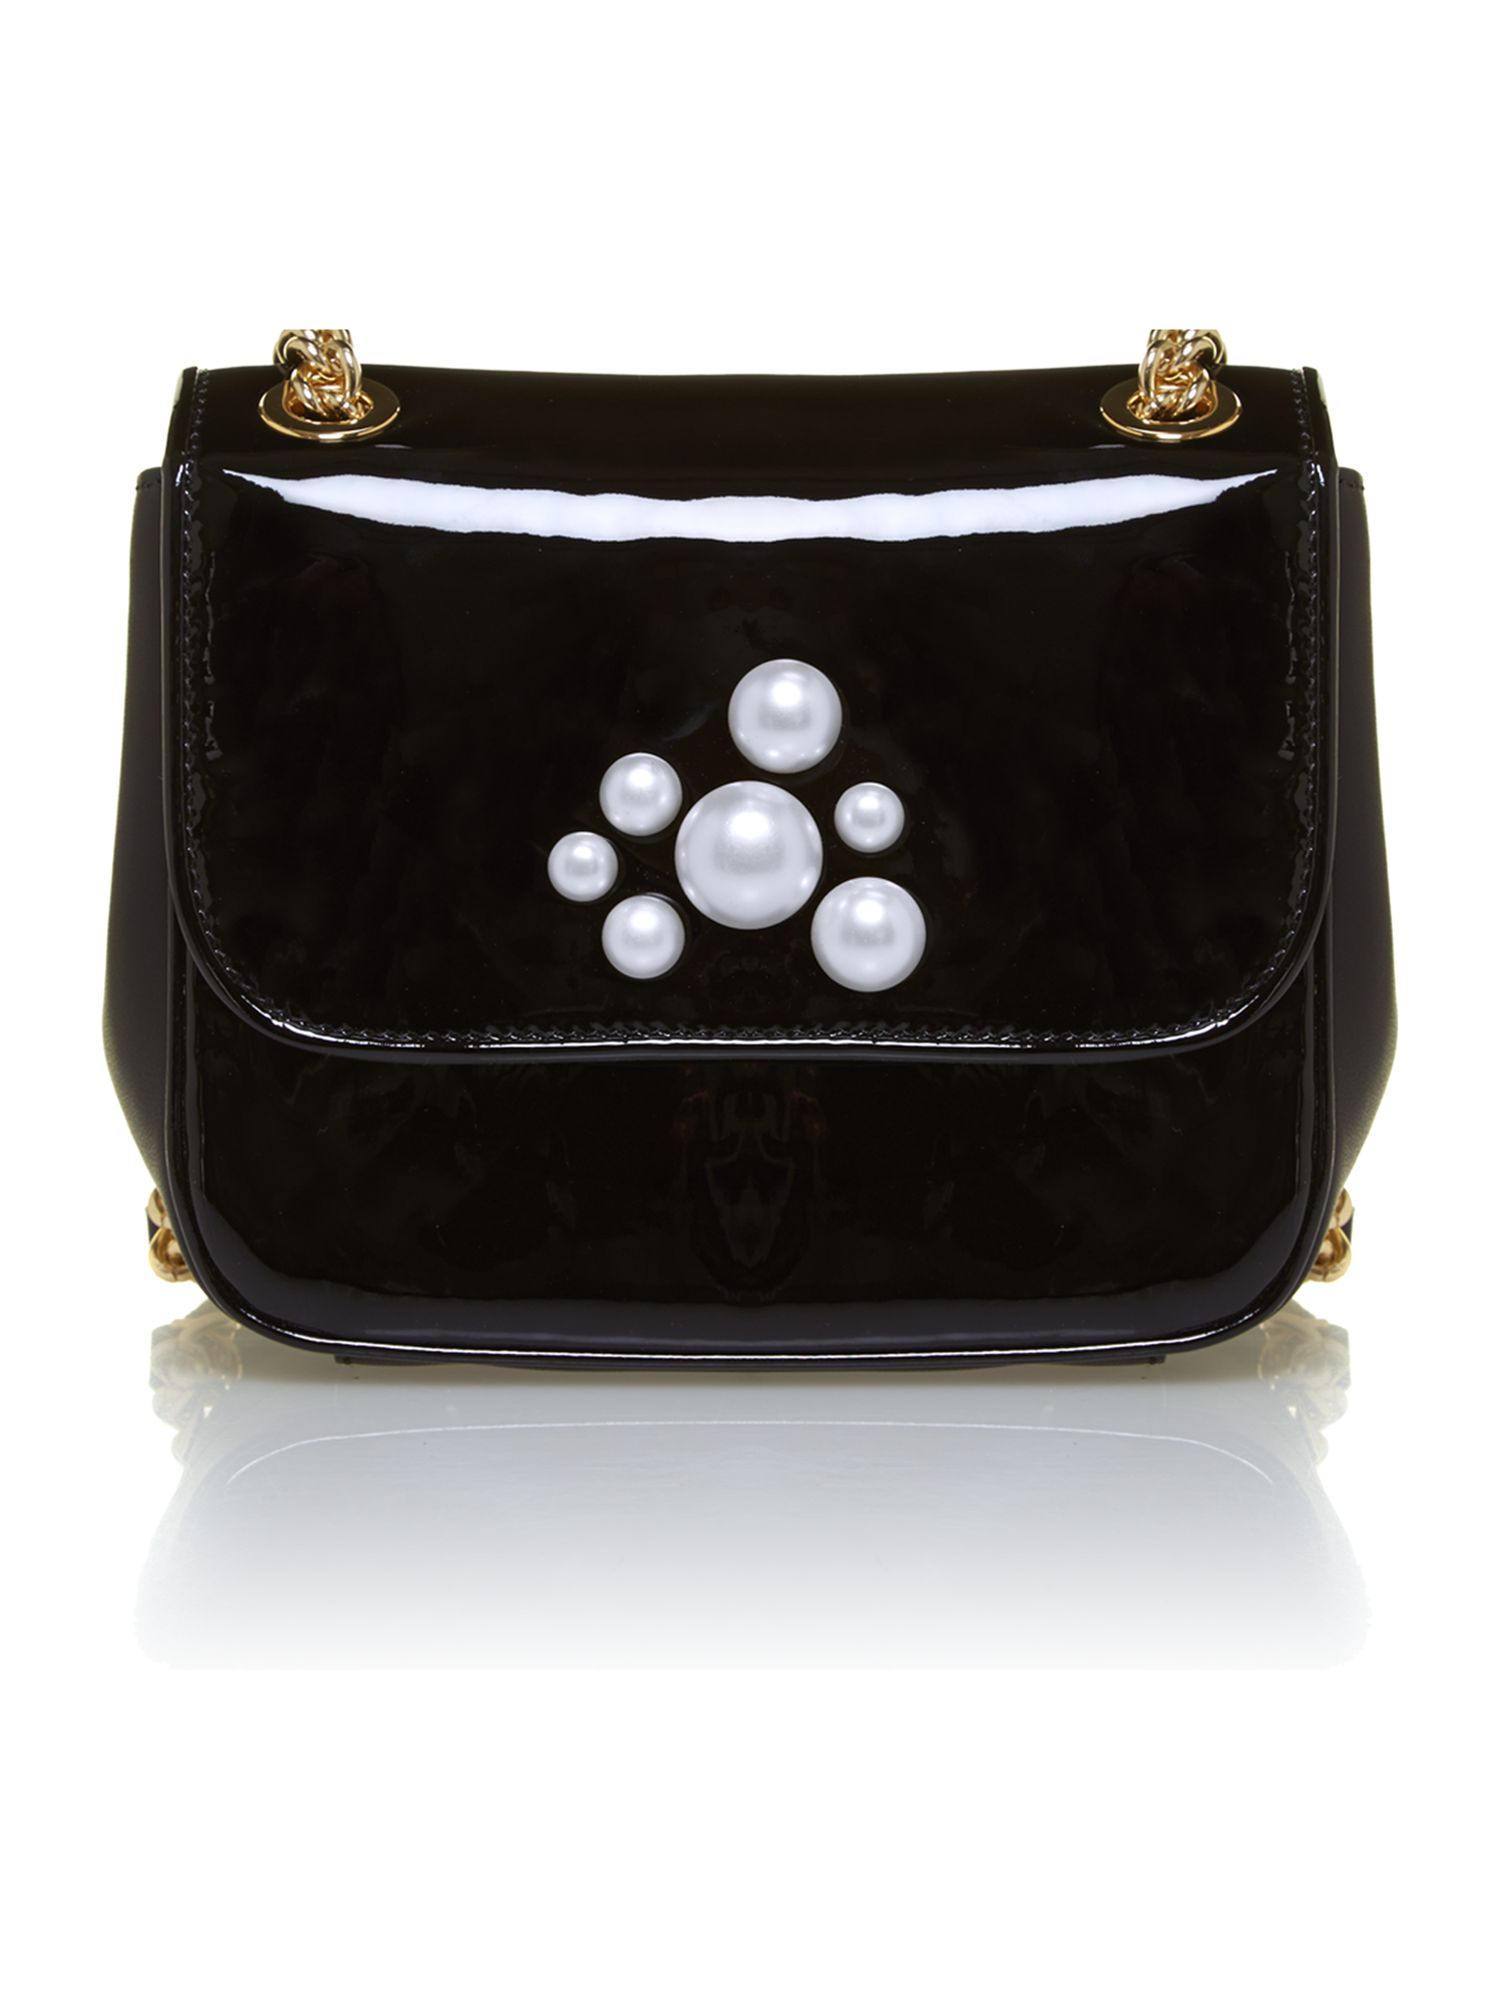 Pearl black shoulder bag